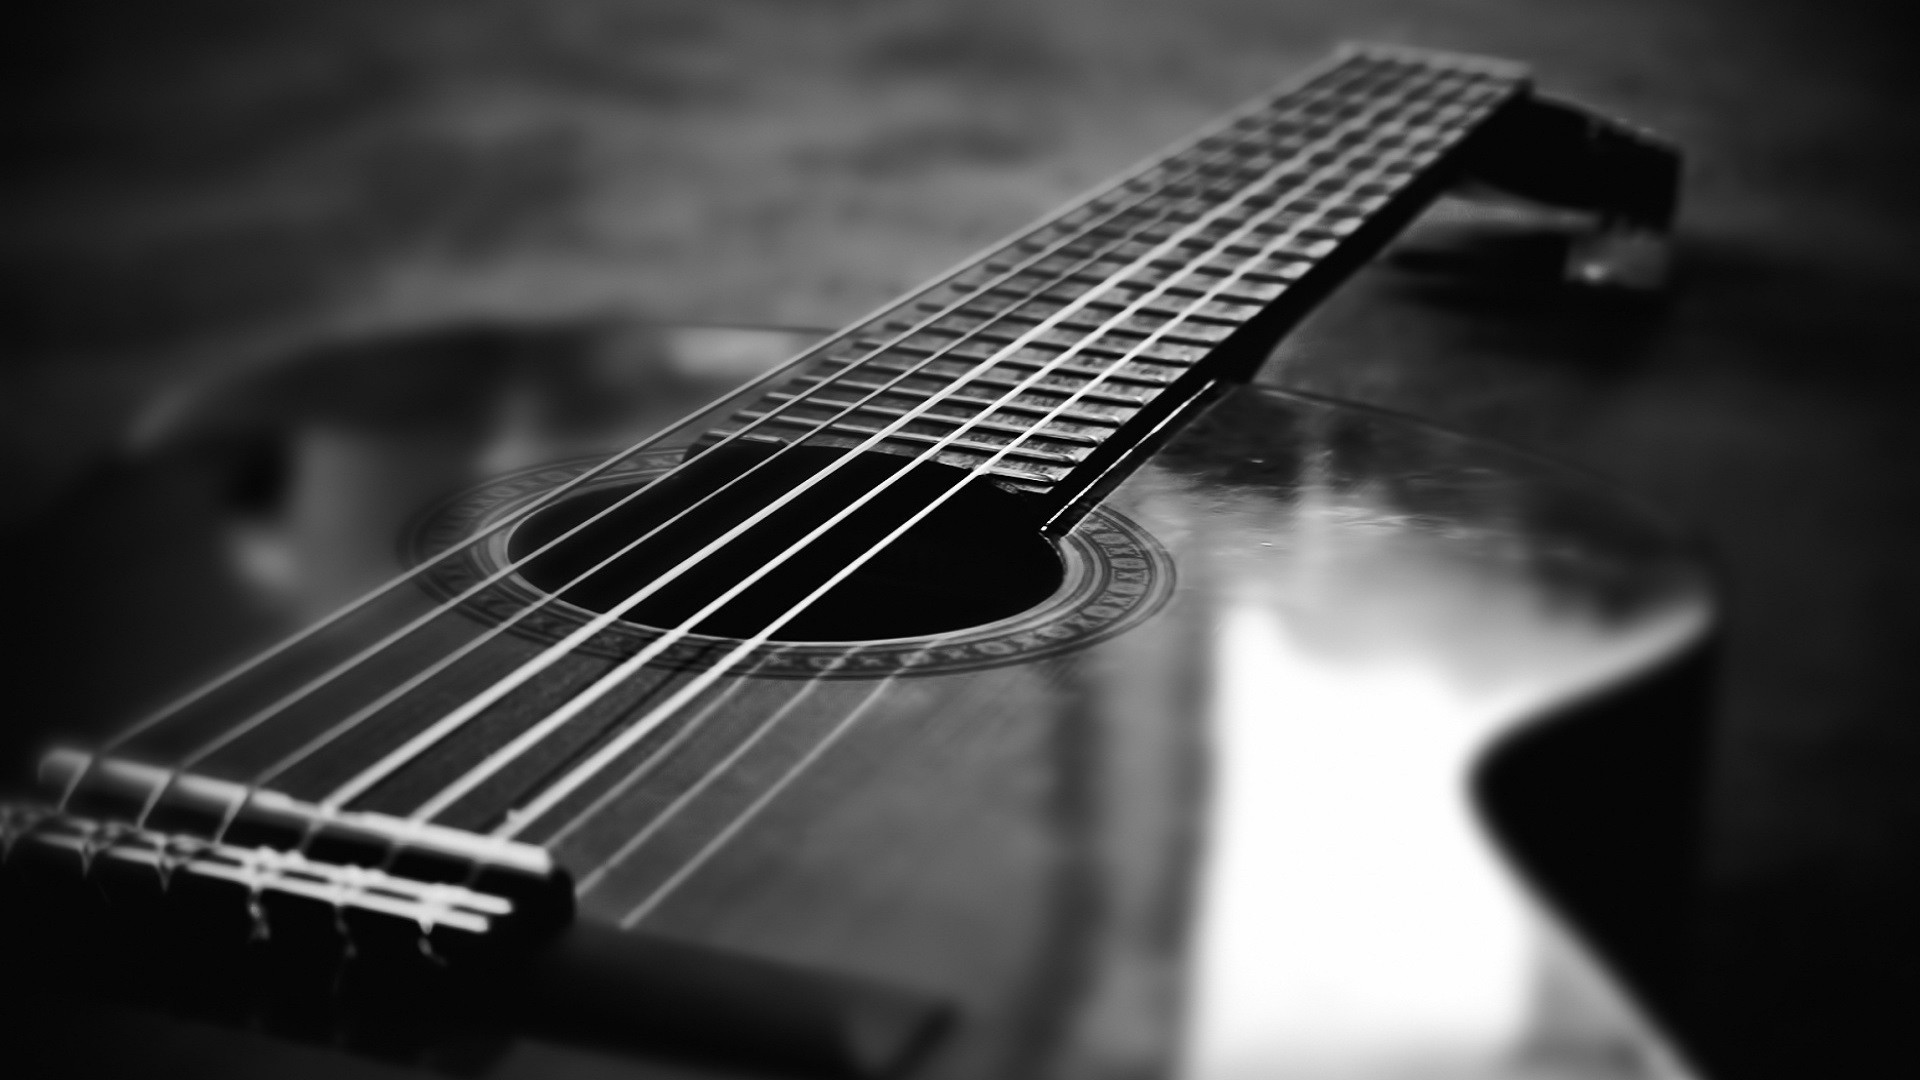 guitar background images